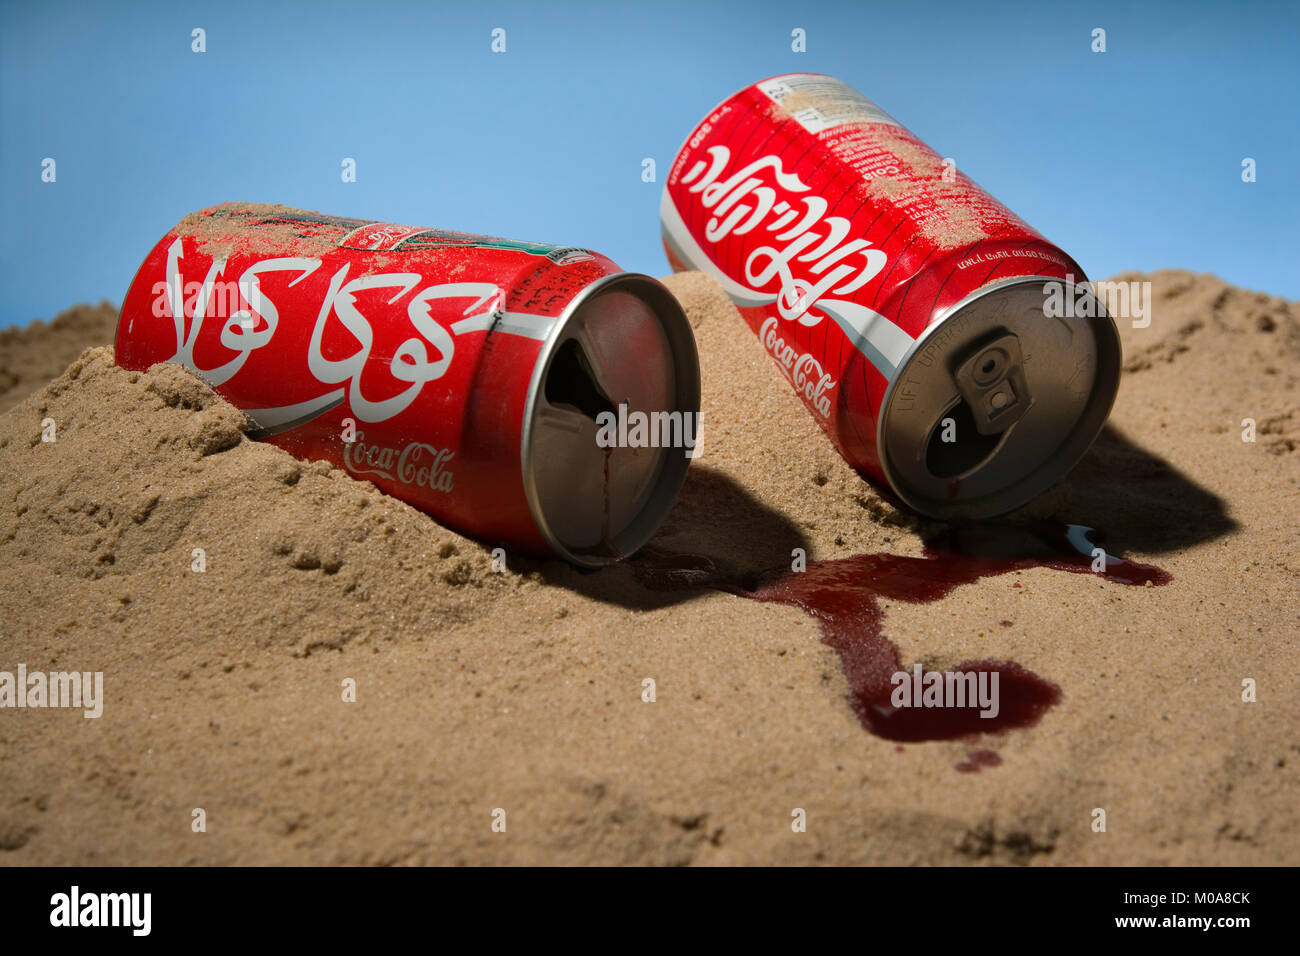 Concept image of Coke cans from Egypt and Israel - Stock Image